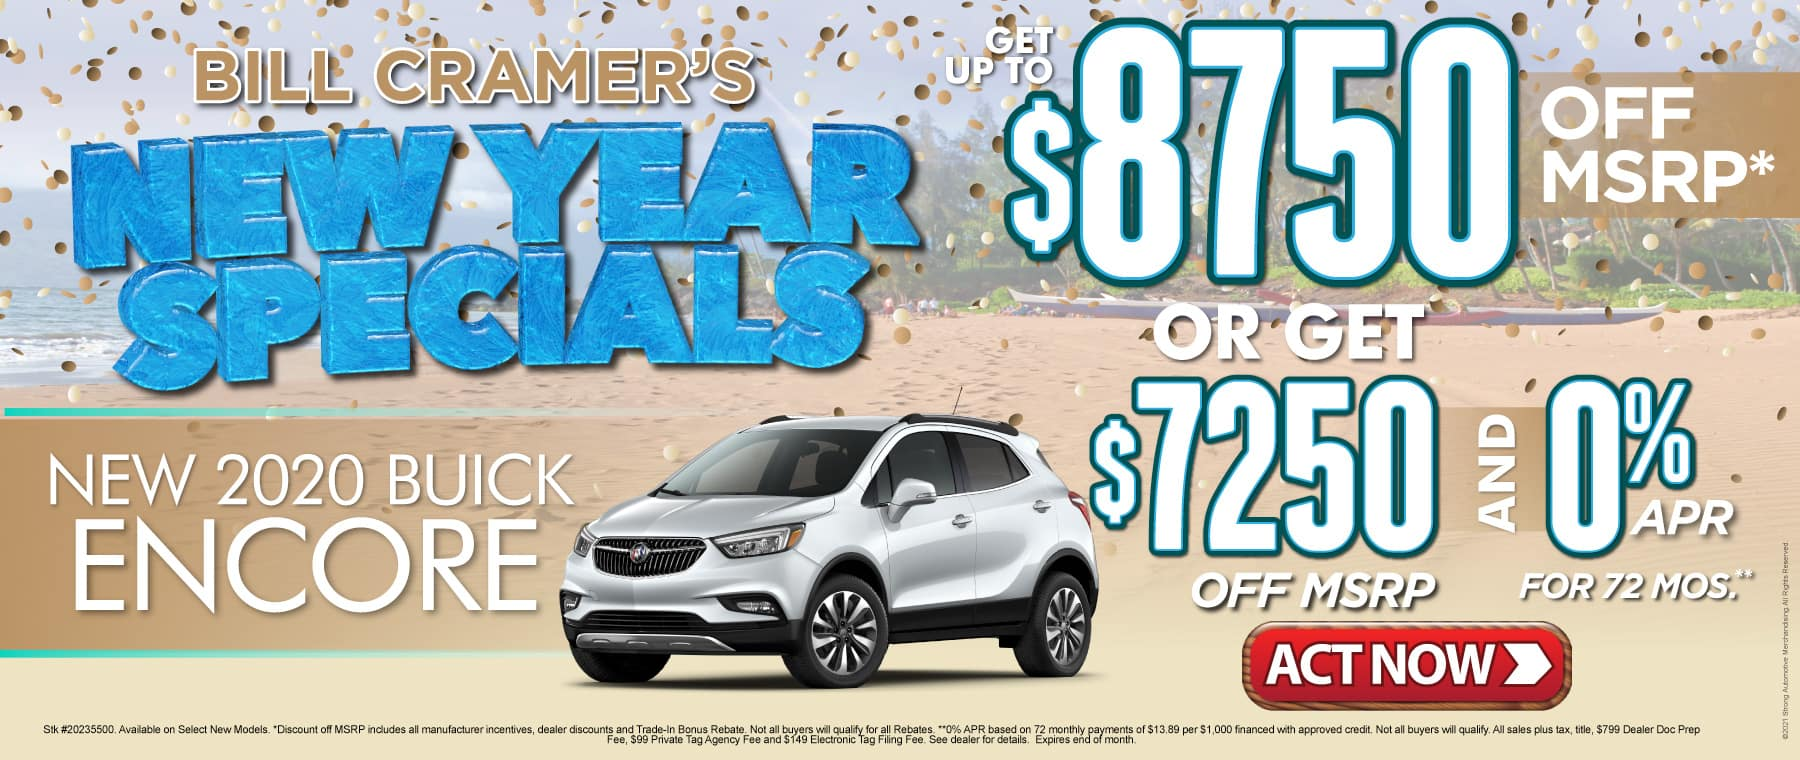 New 2020 Buick Encore - Get up to $8750 off msrp - Act Now